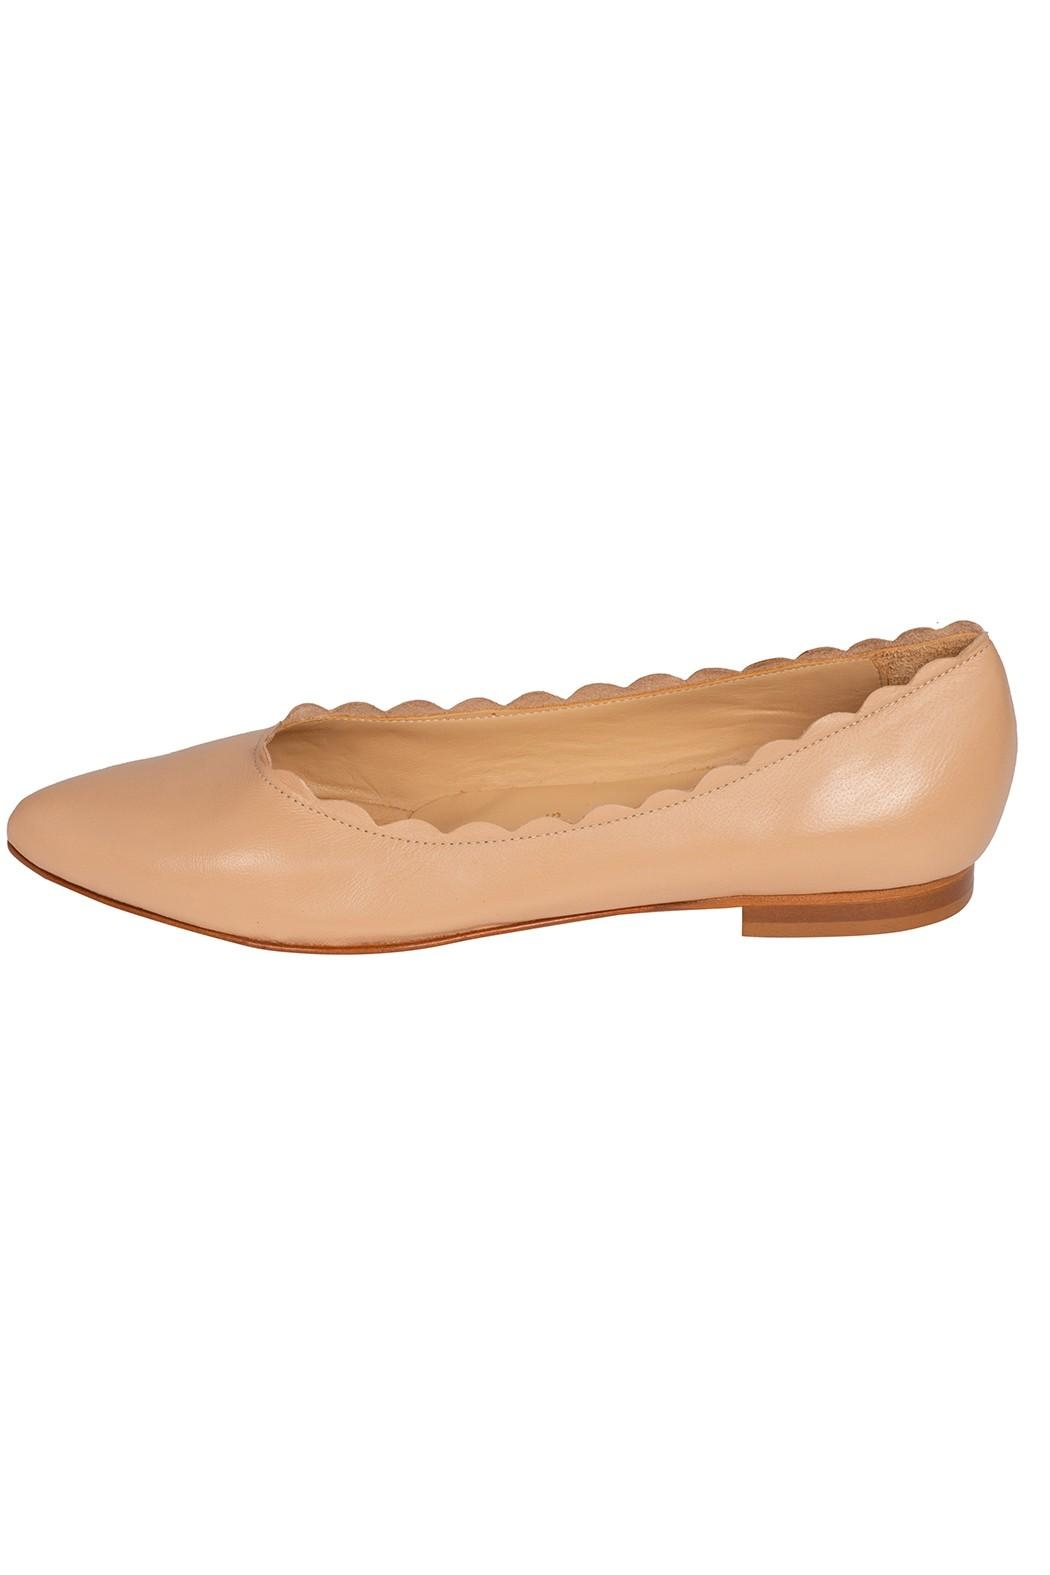 Pascucci Leather Nude Ballet-Flats - Main Image